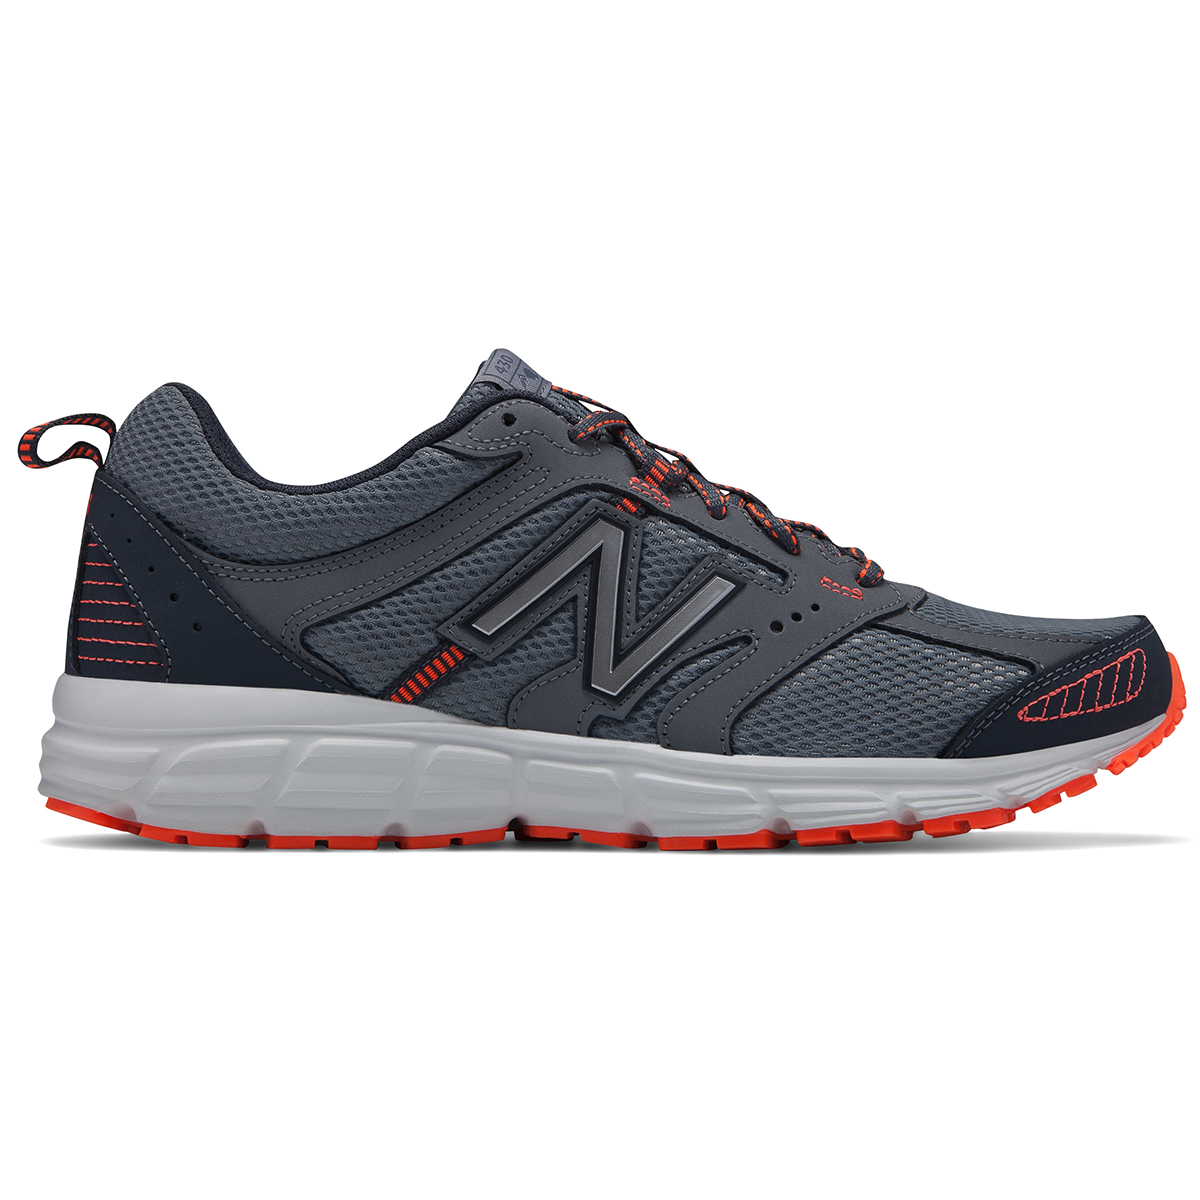 New Balance Men's 430 Running Shoe, Wide - Black, 10.5